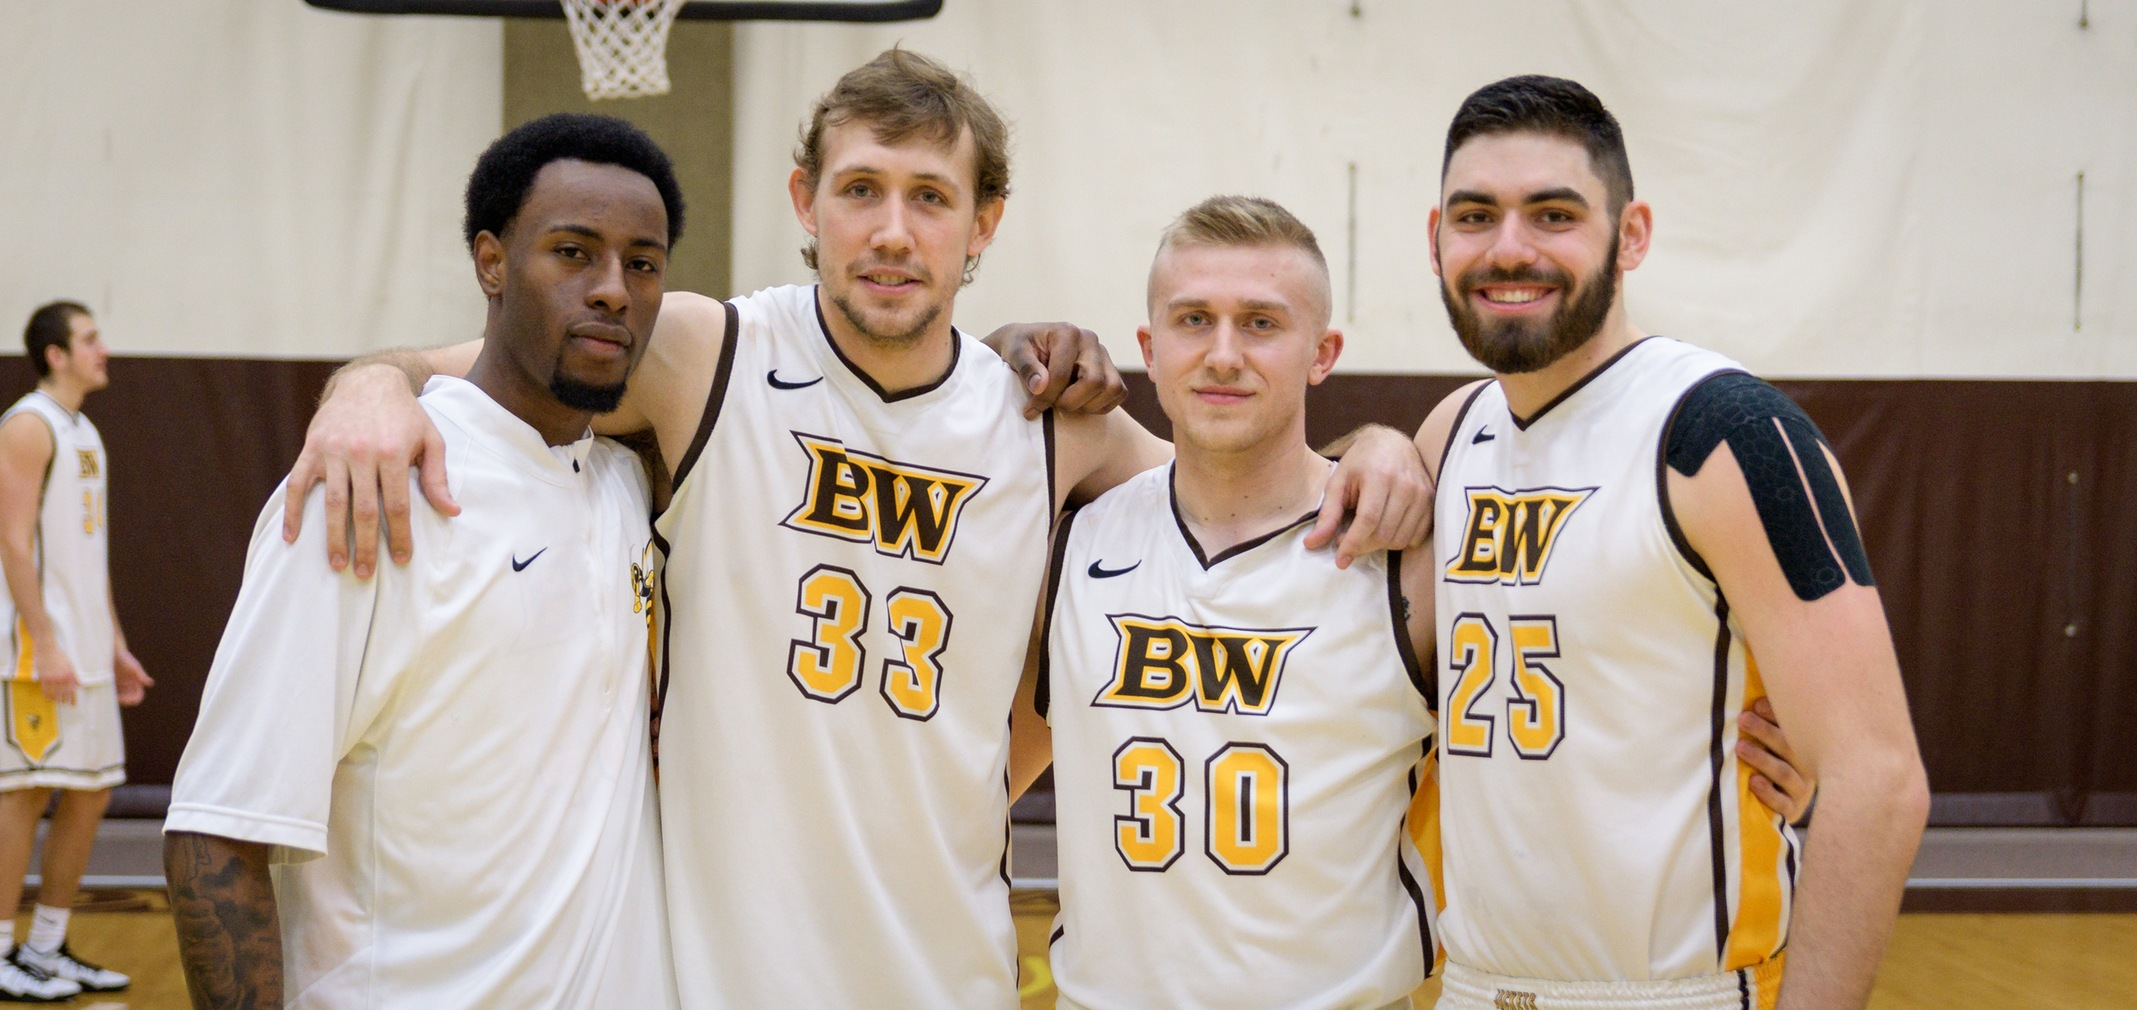 Seniors Jordan Richardson, Jake Fetherolf, Cam Kuhn and Mike Kaminski (Photo courtesy of Jesse Kucewicz)